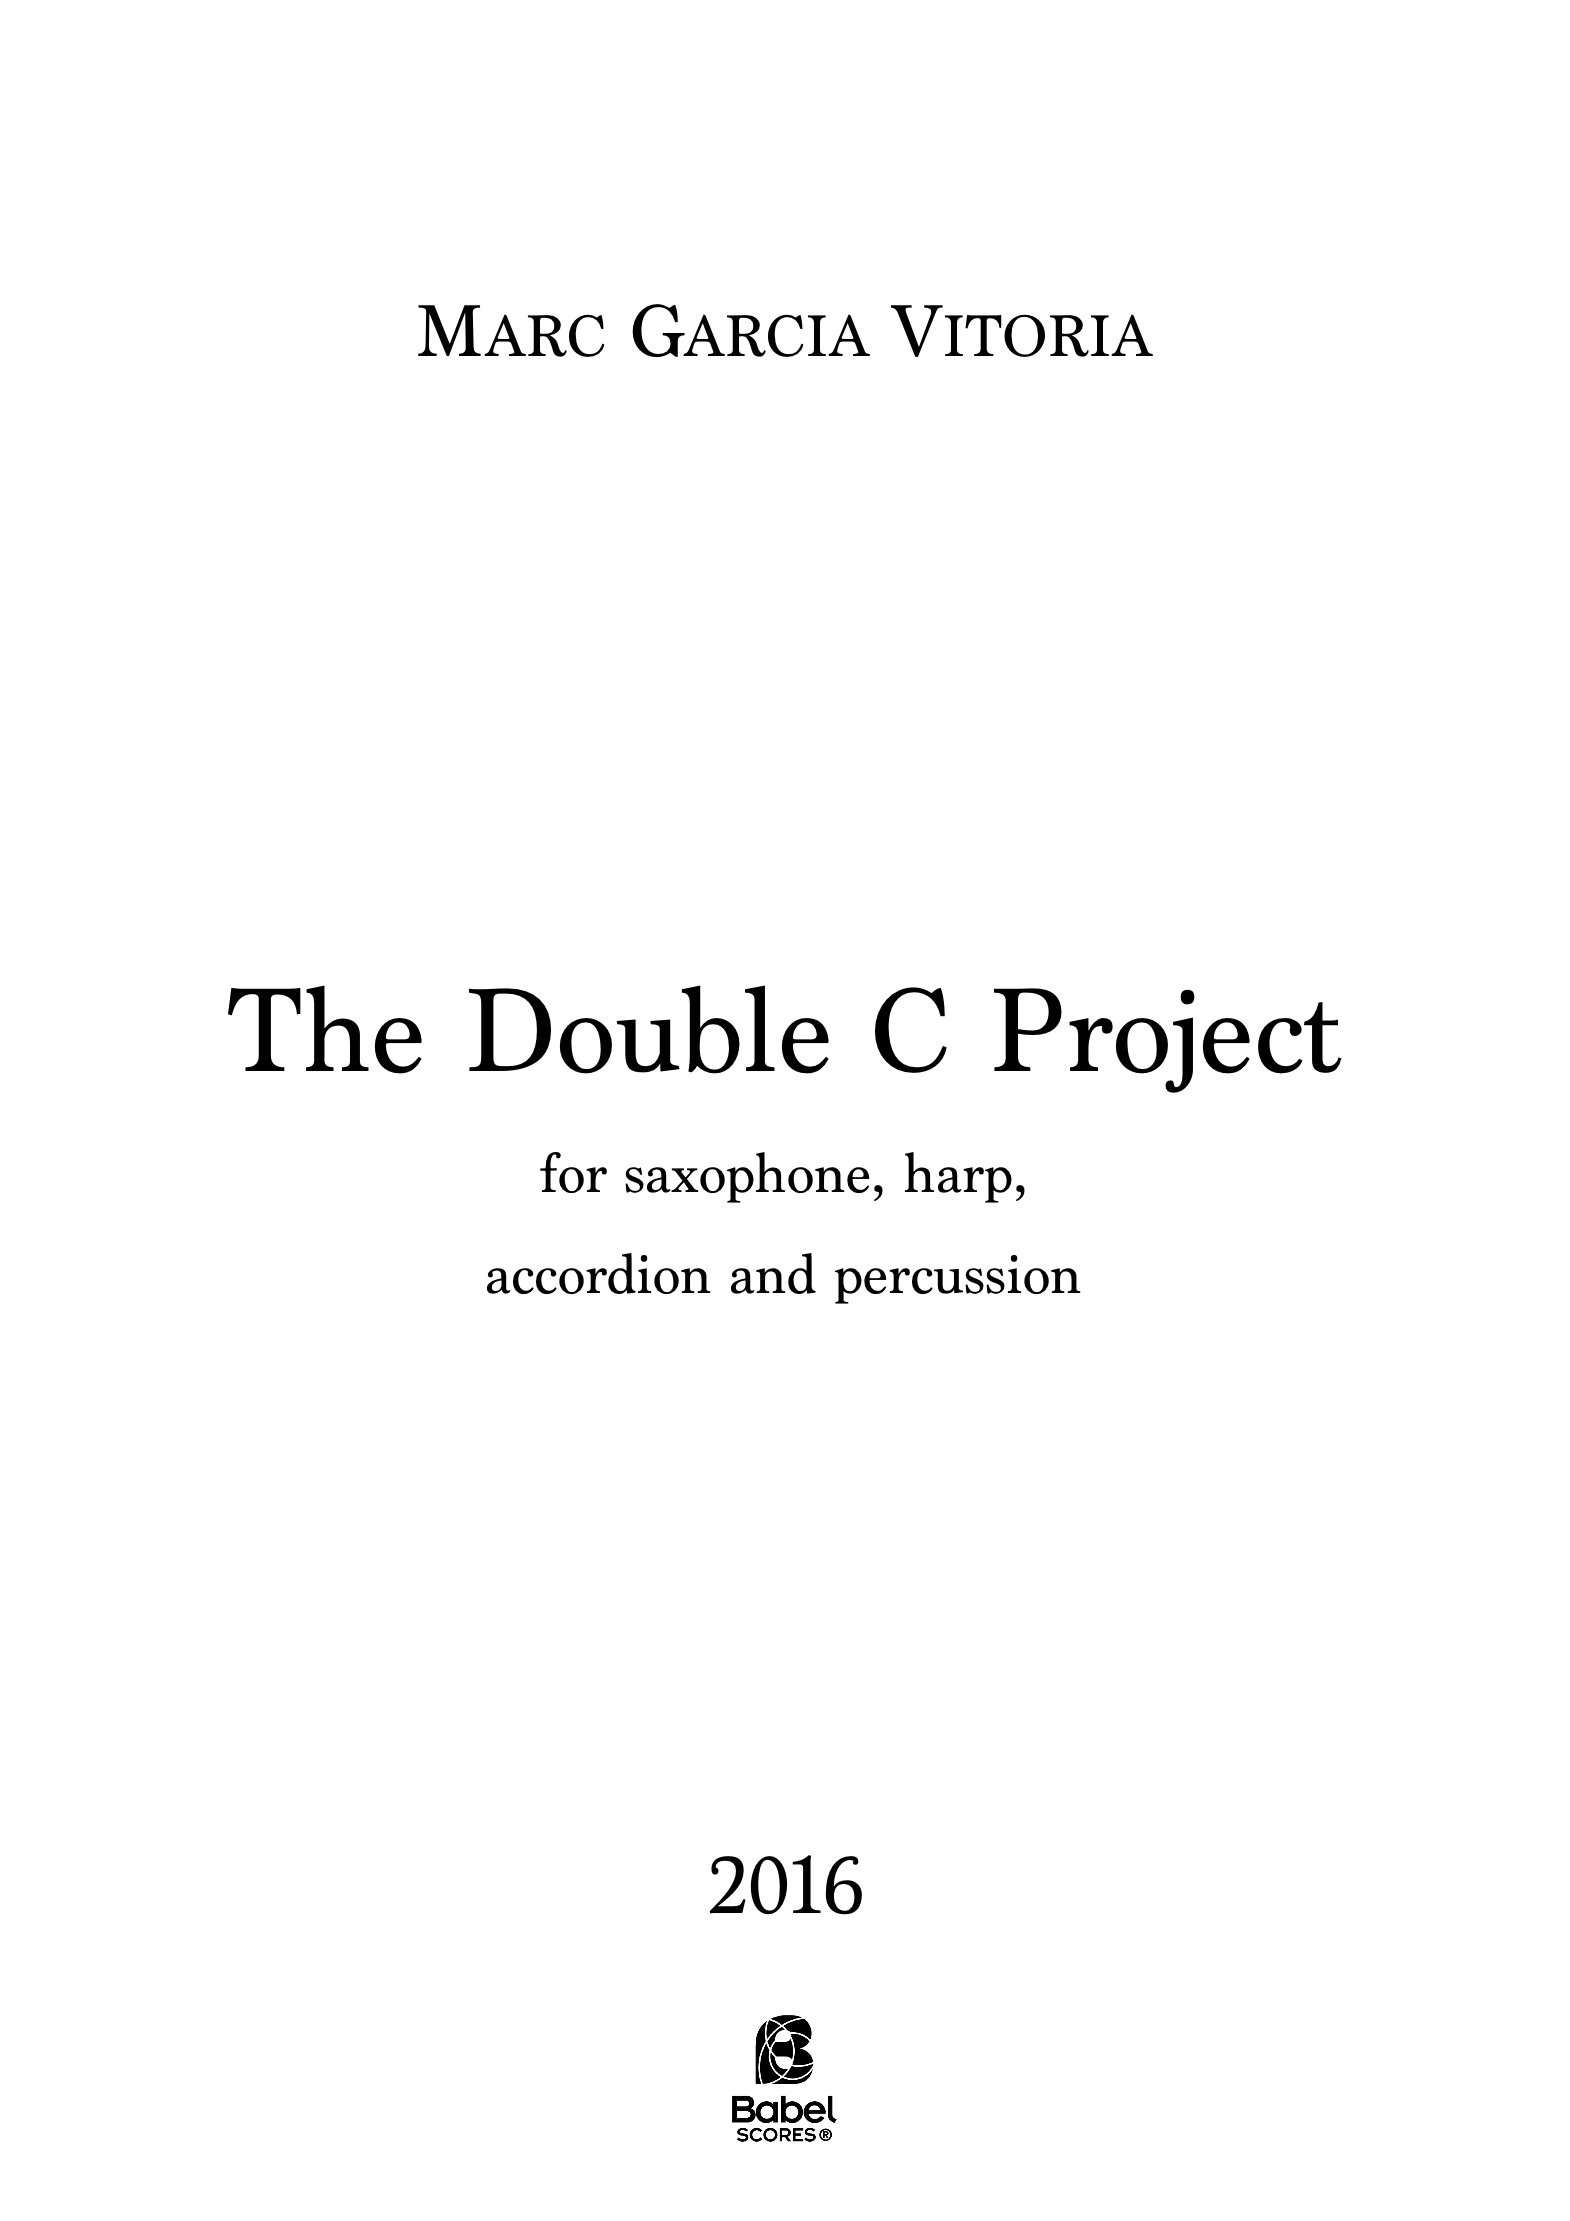 The Double C Project A4 z 2 1 331